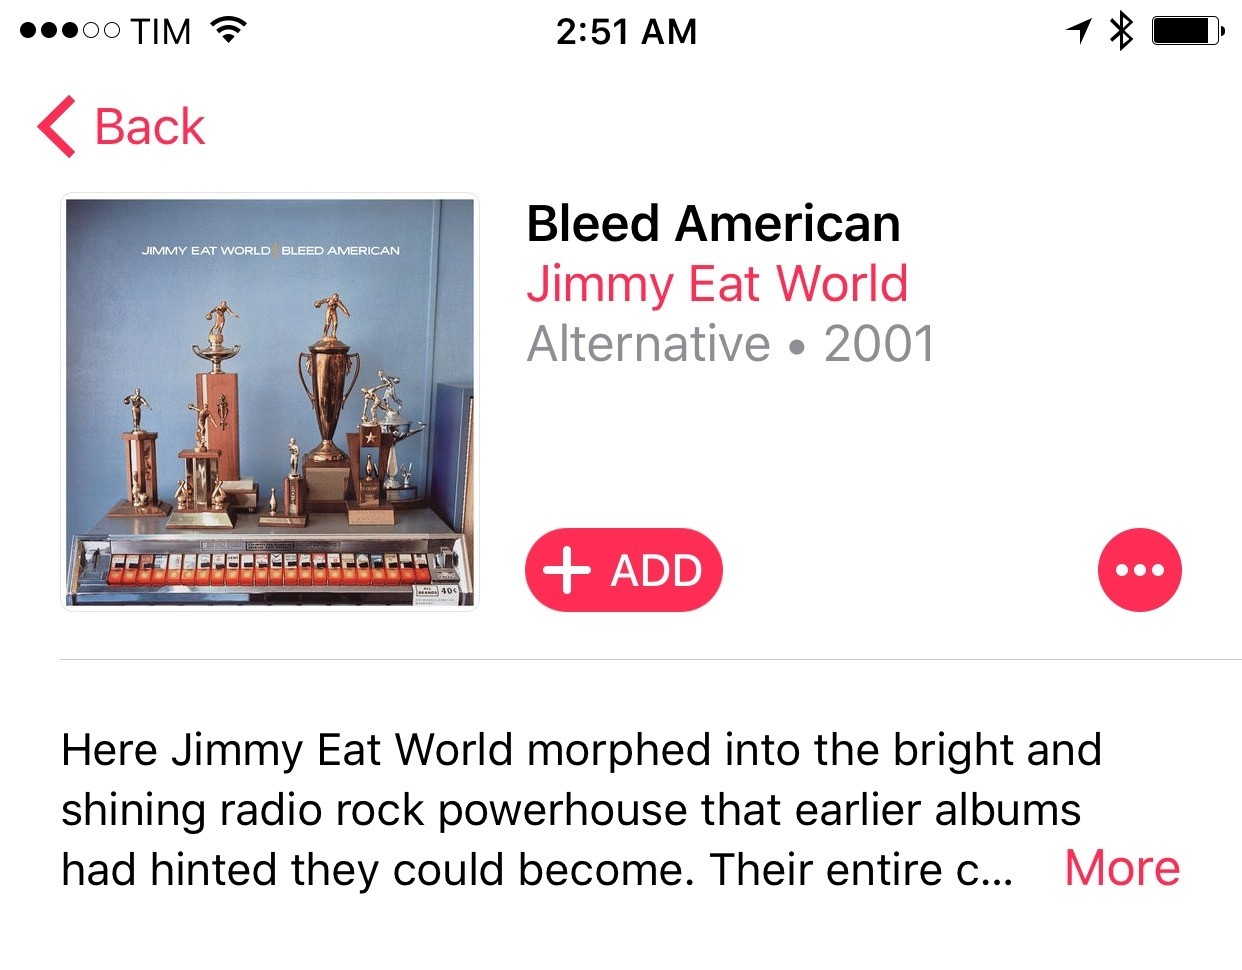 Album titles no longer sit in the title bar – they're part of the content itself.